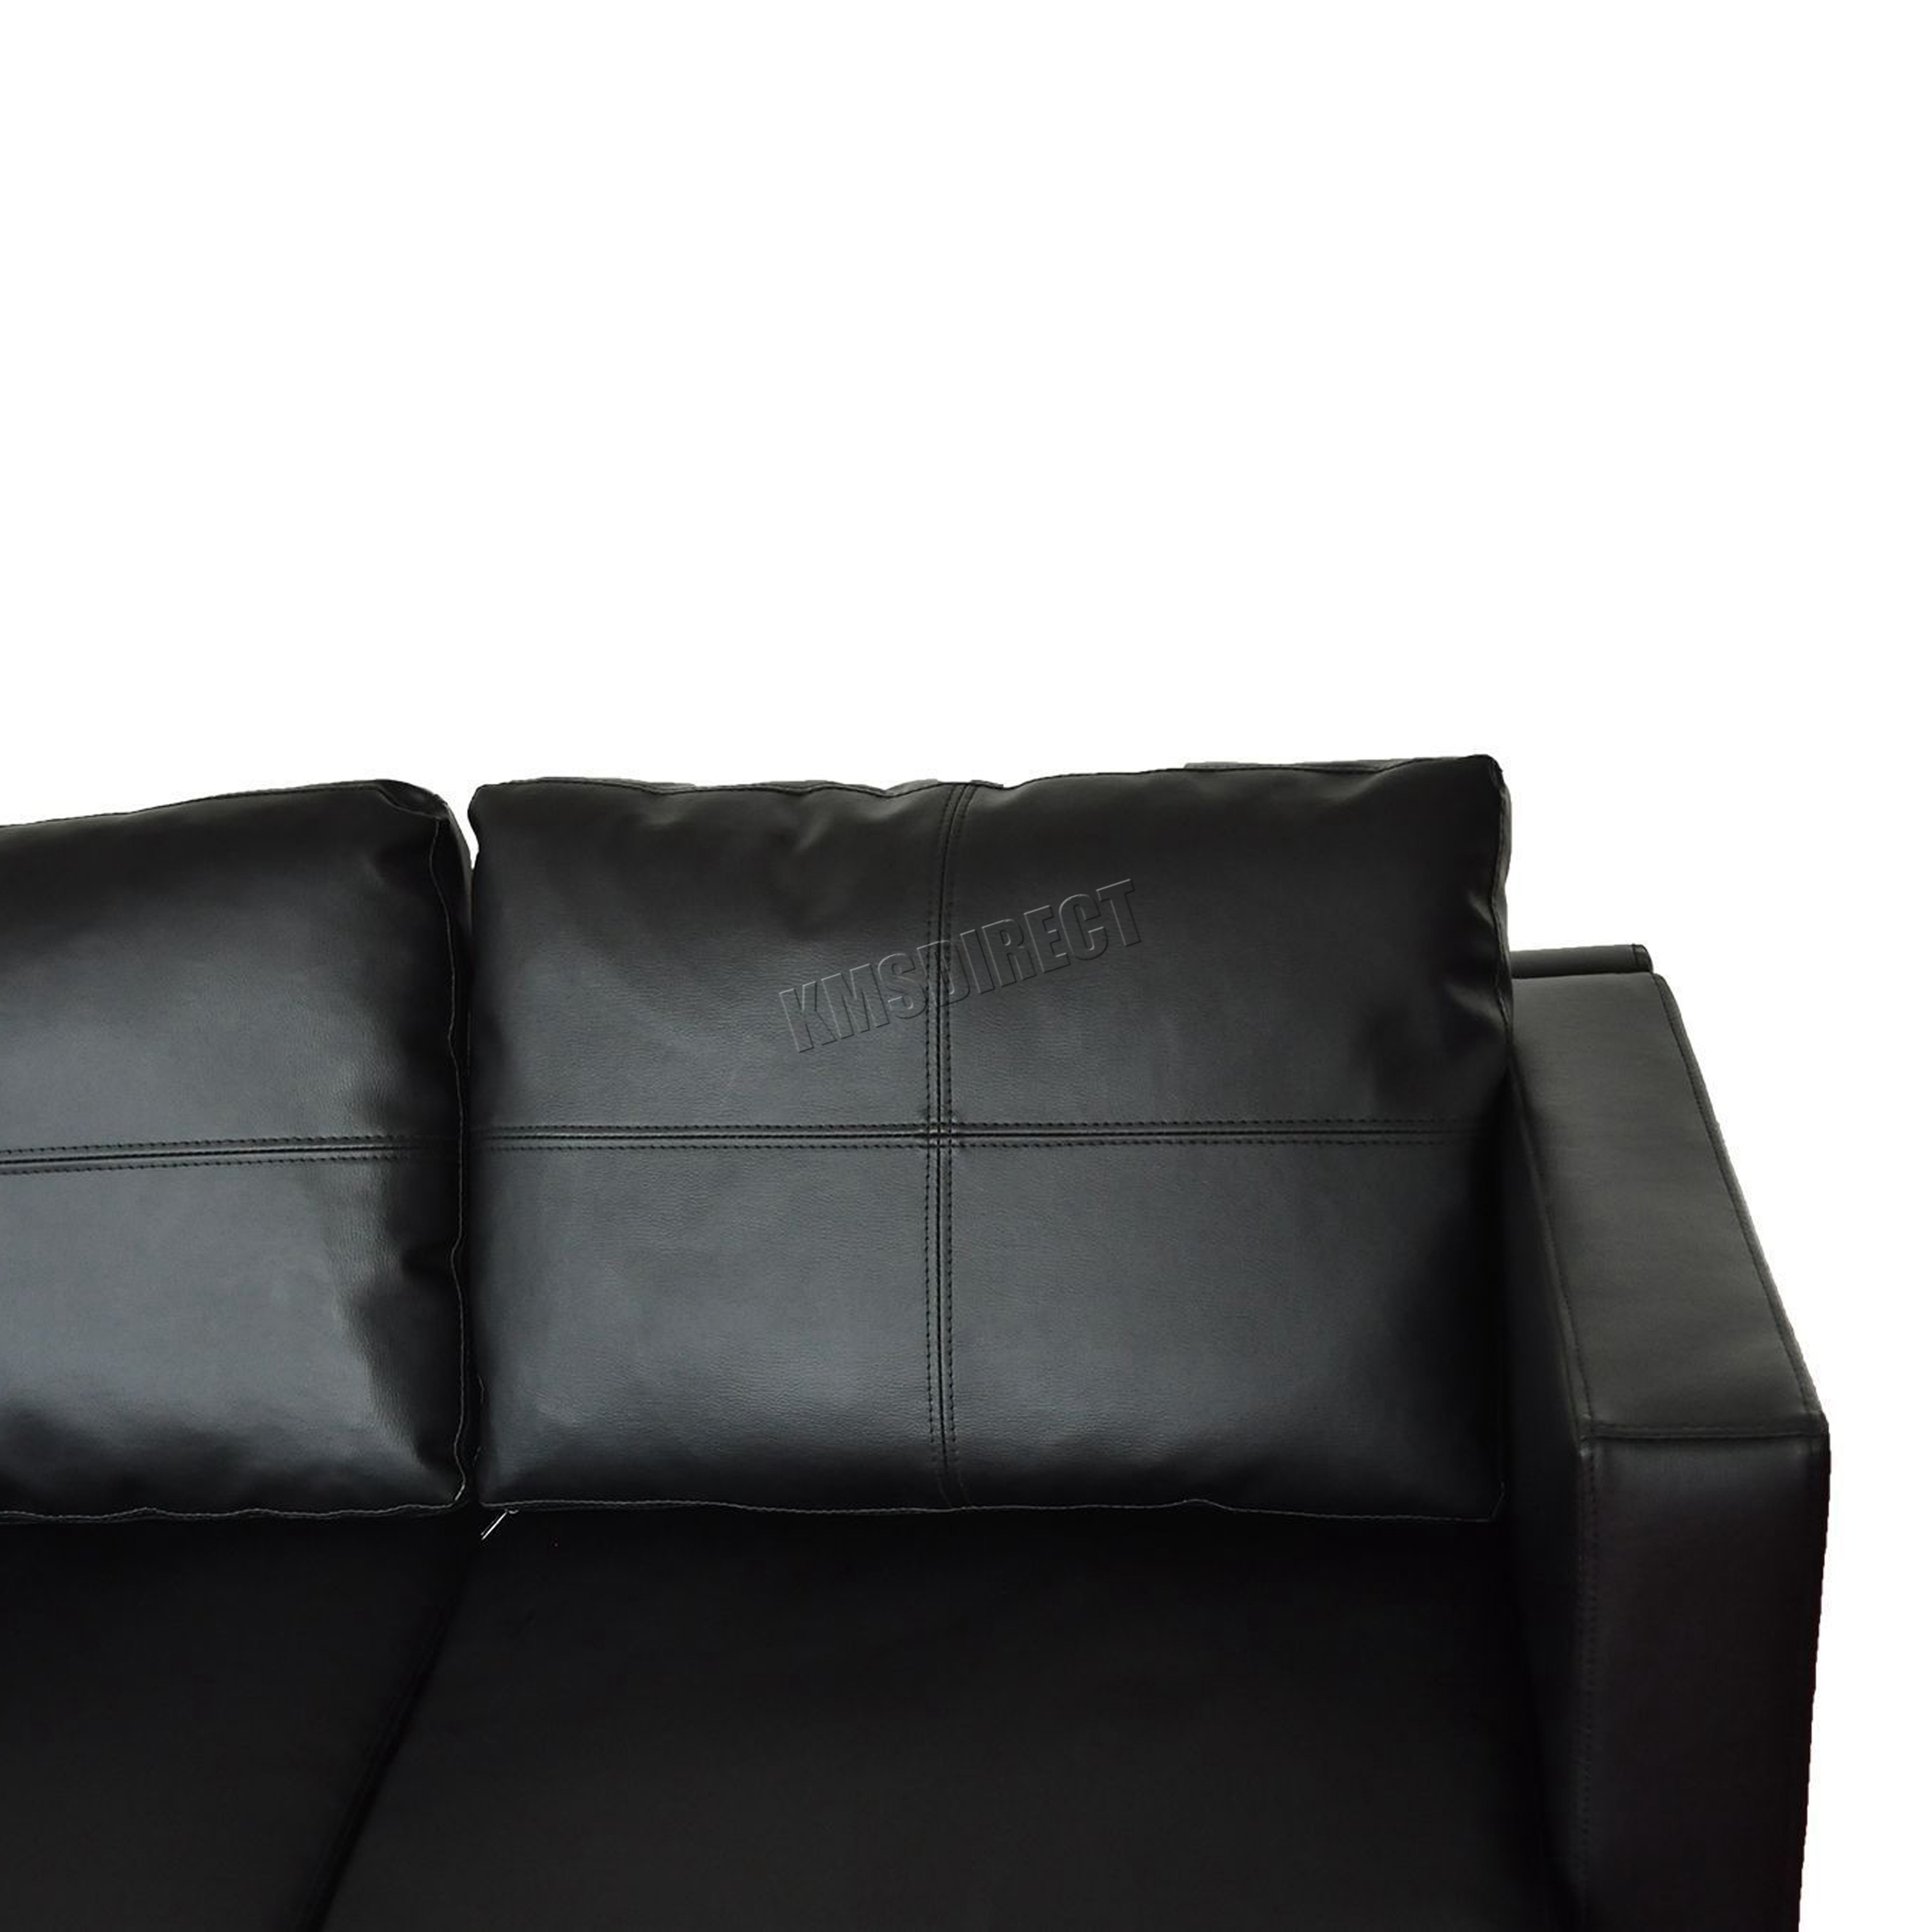 black sofa chaise longue desk for laptop foxhunter modern pu l shaped corner 3 seater with